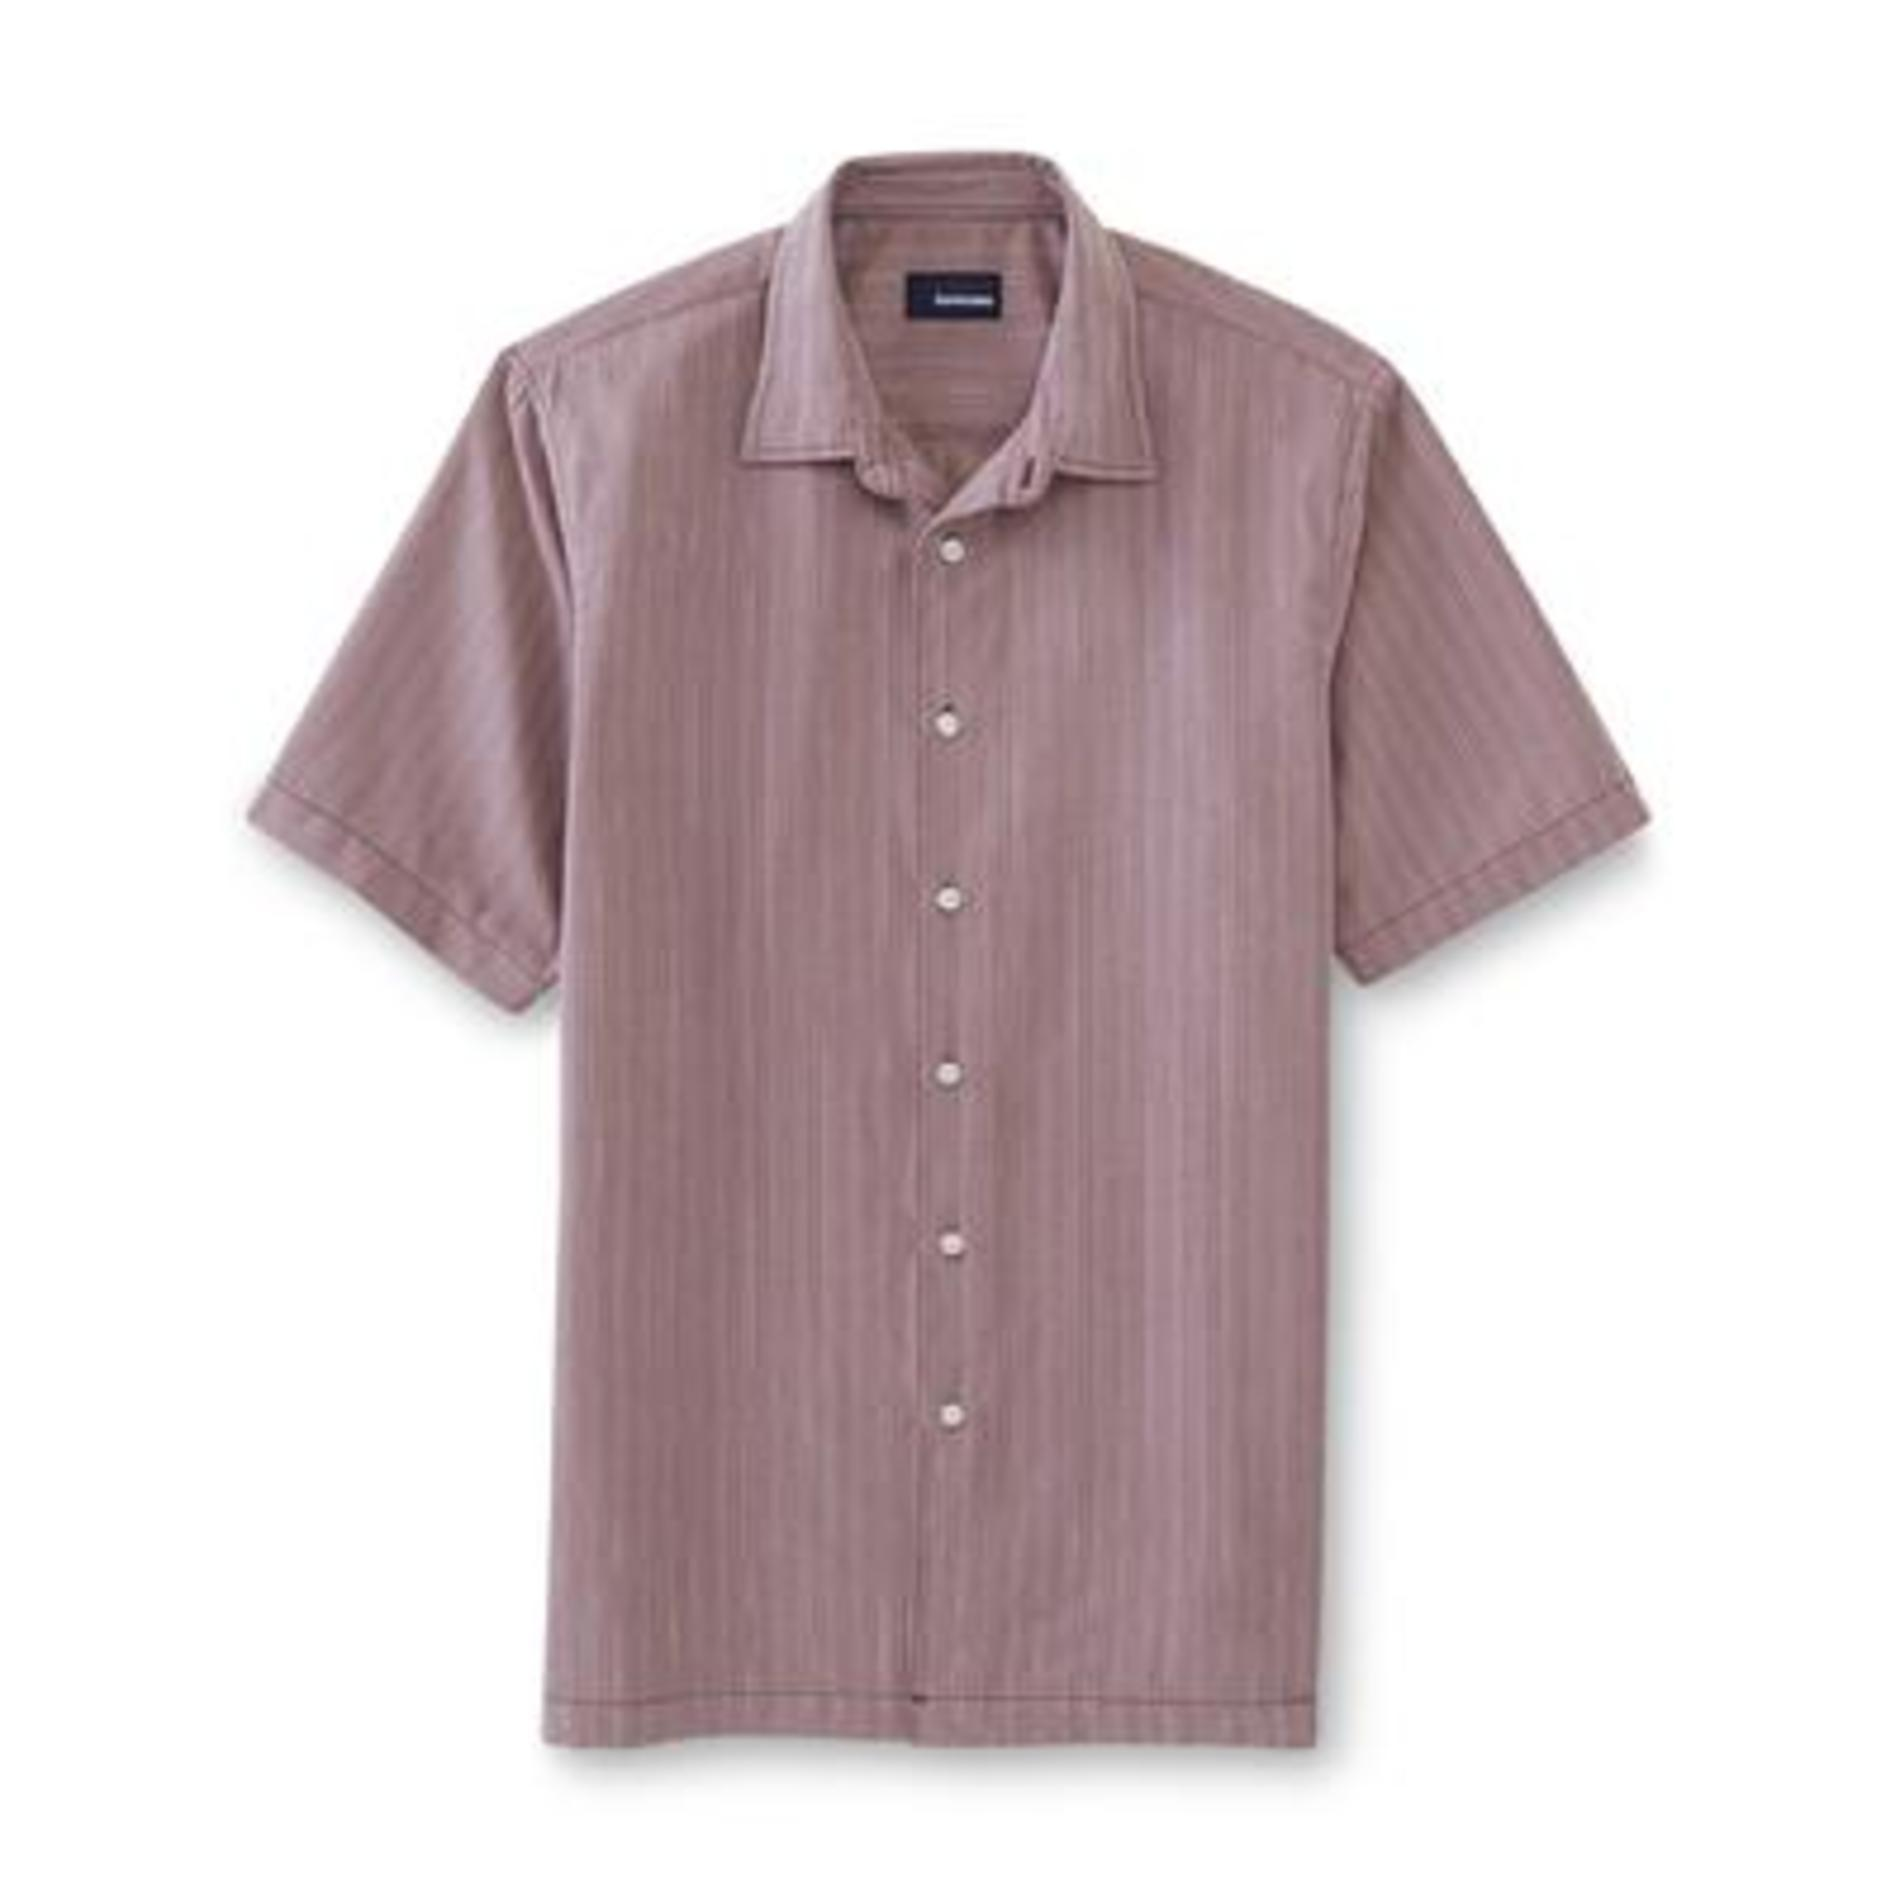 Basic Editions  Men's Big & Tall Woven Button-Front Shirt - Striped